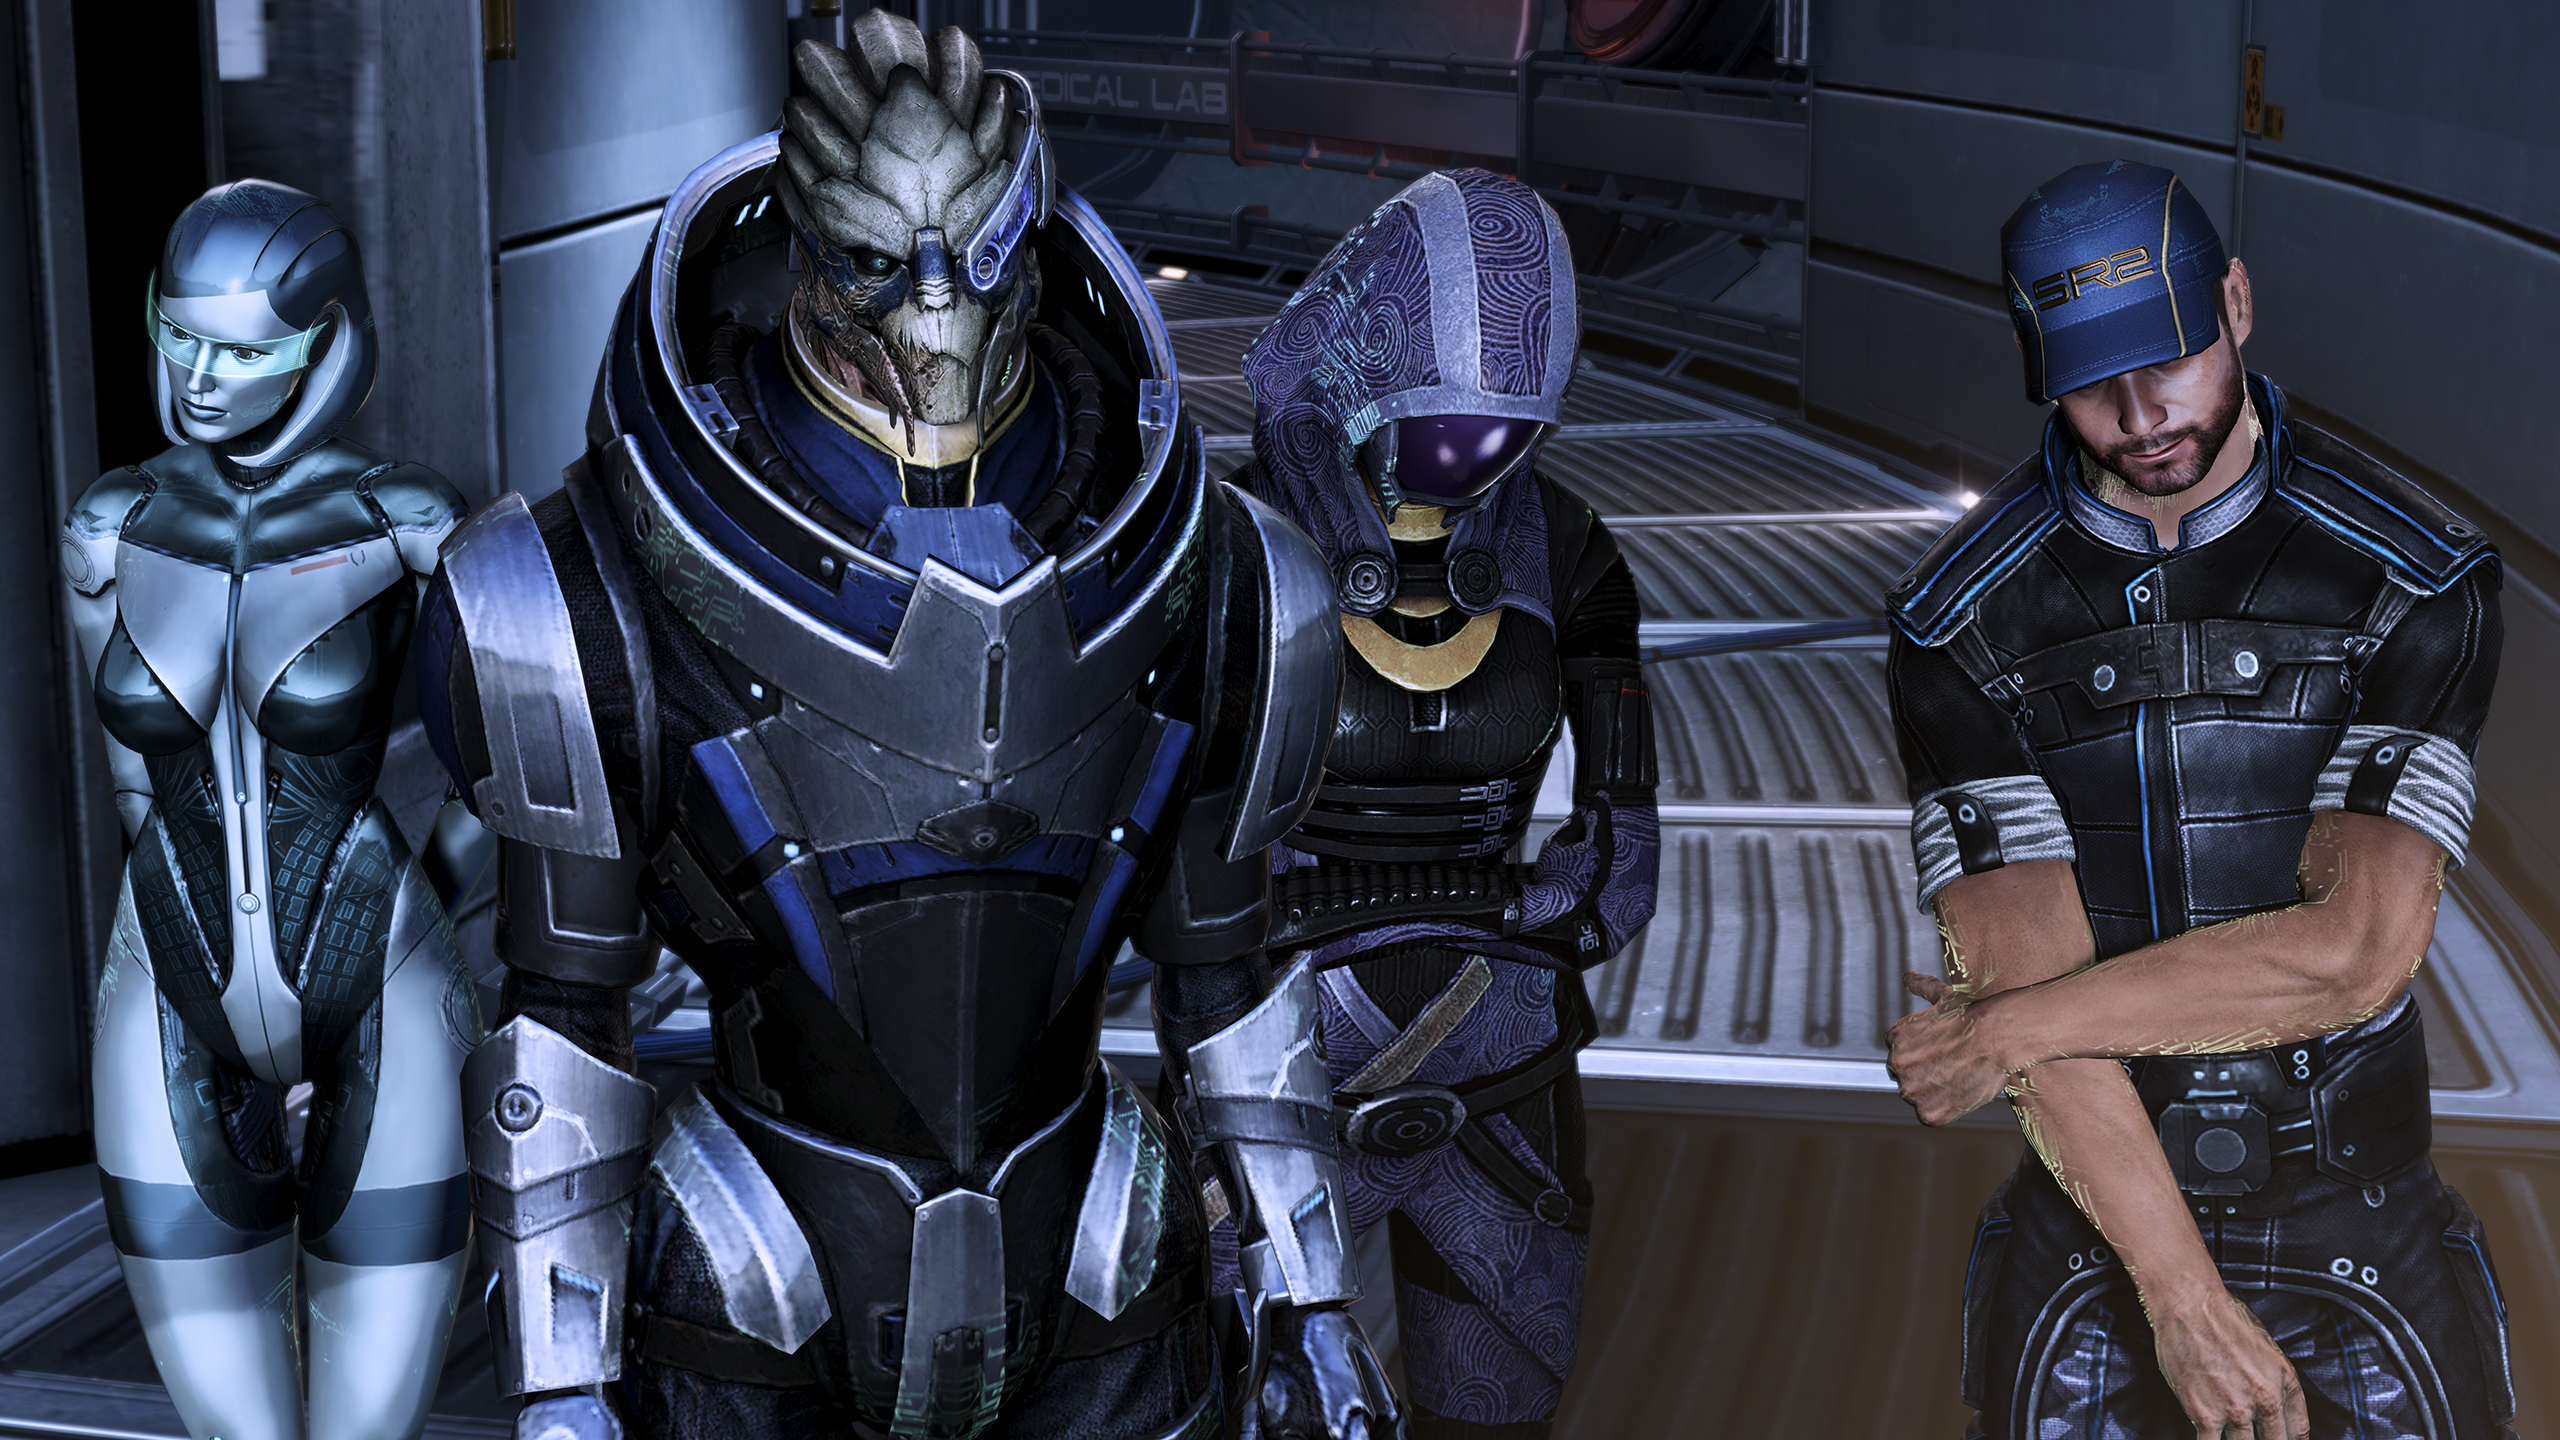 How Tall Is Garrus Vakarian